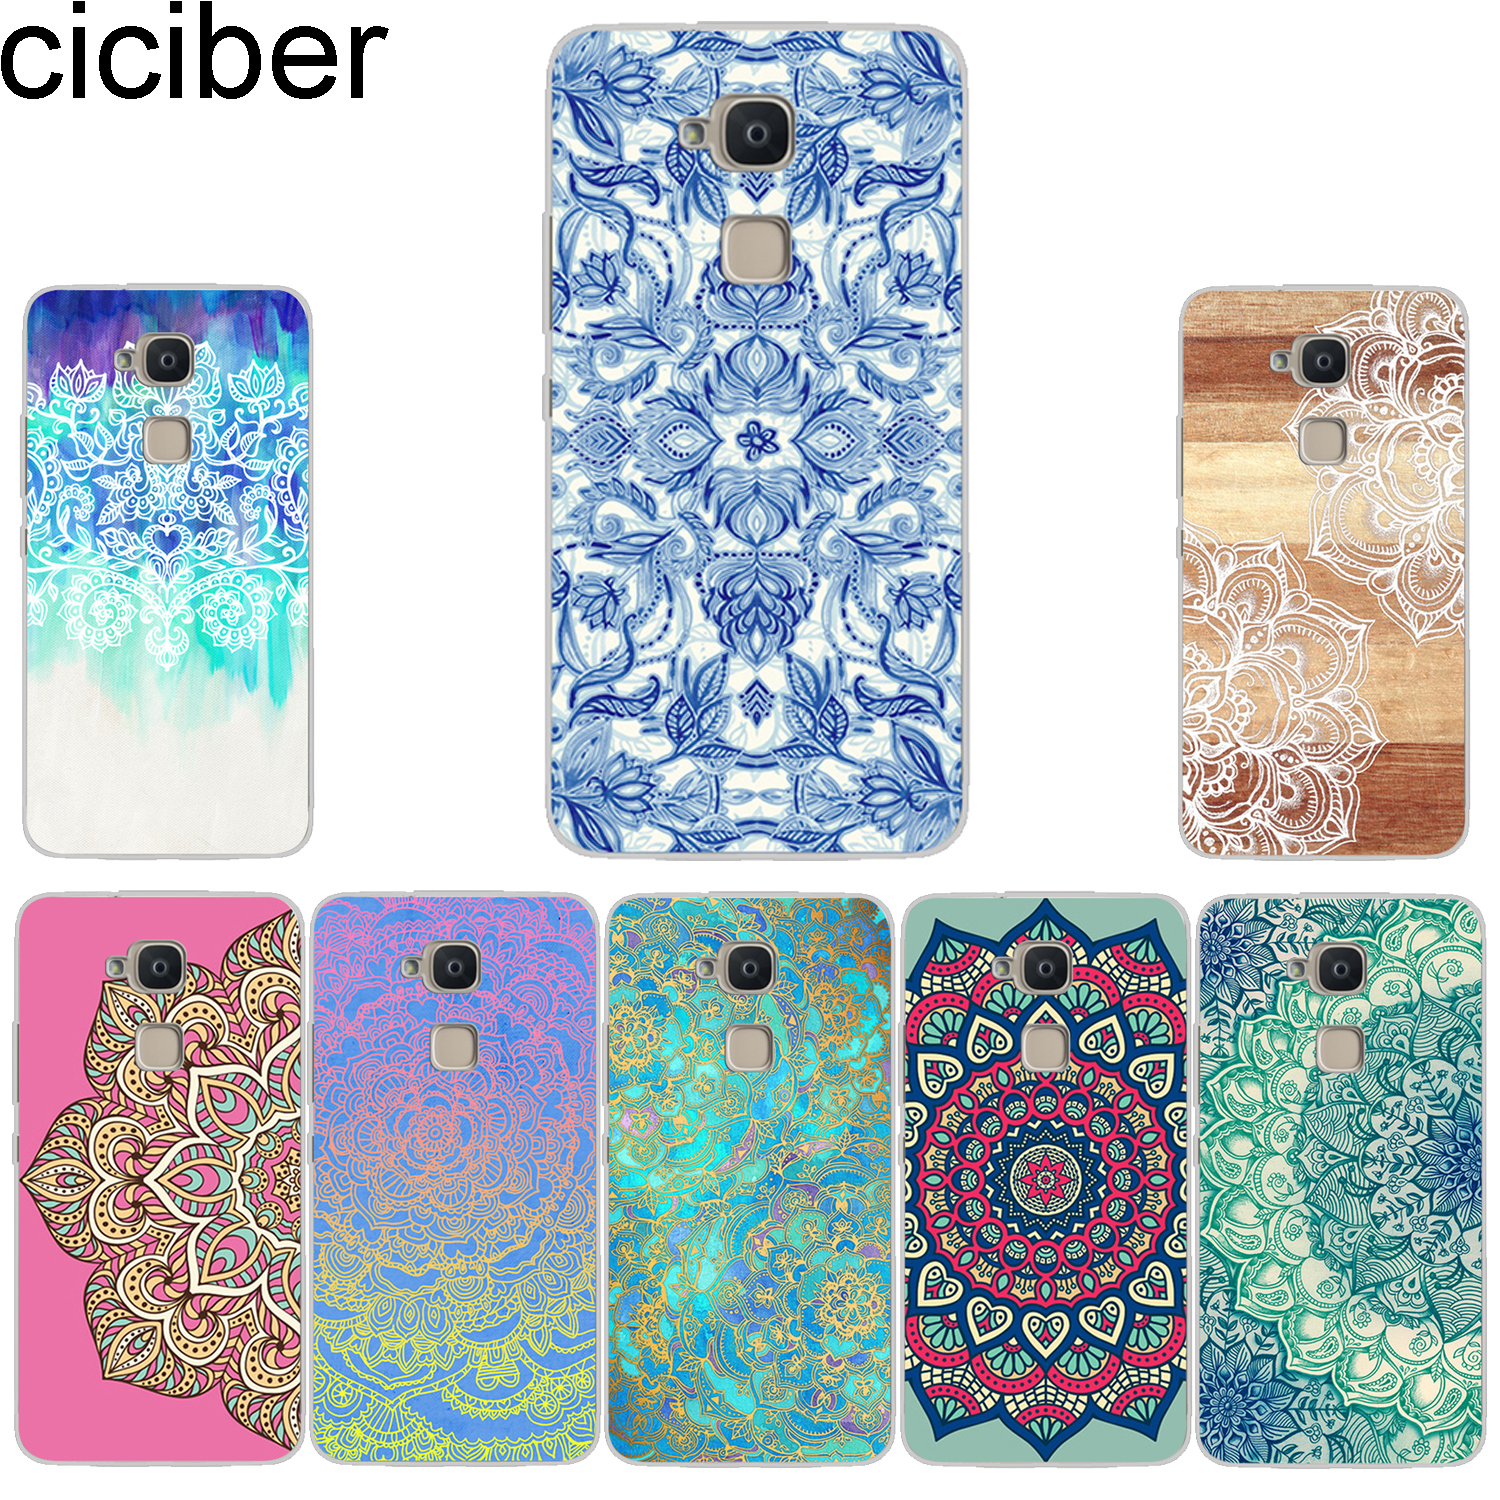 Buy ciciber Phone Case for BQ Aquaris X2 X Pro V VS U U2 Lite Plus Soft TPU Back Cover for Aquaris E5s 4.5 M5 M5.5 4.5 X5 Mandala for only 1.2 USD